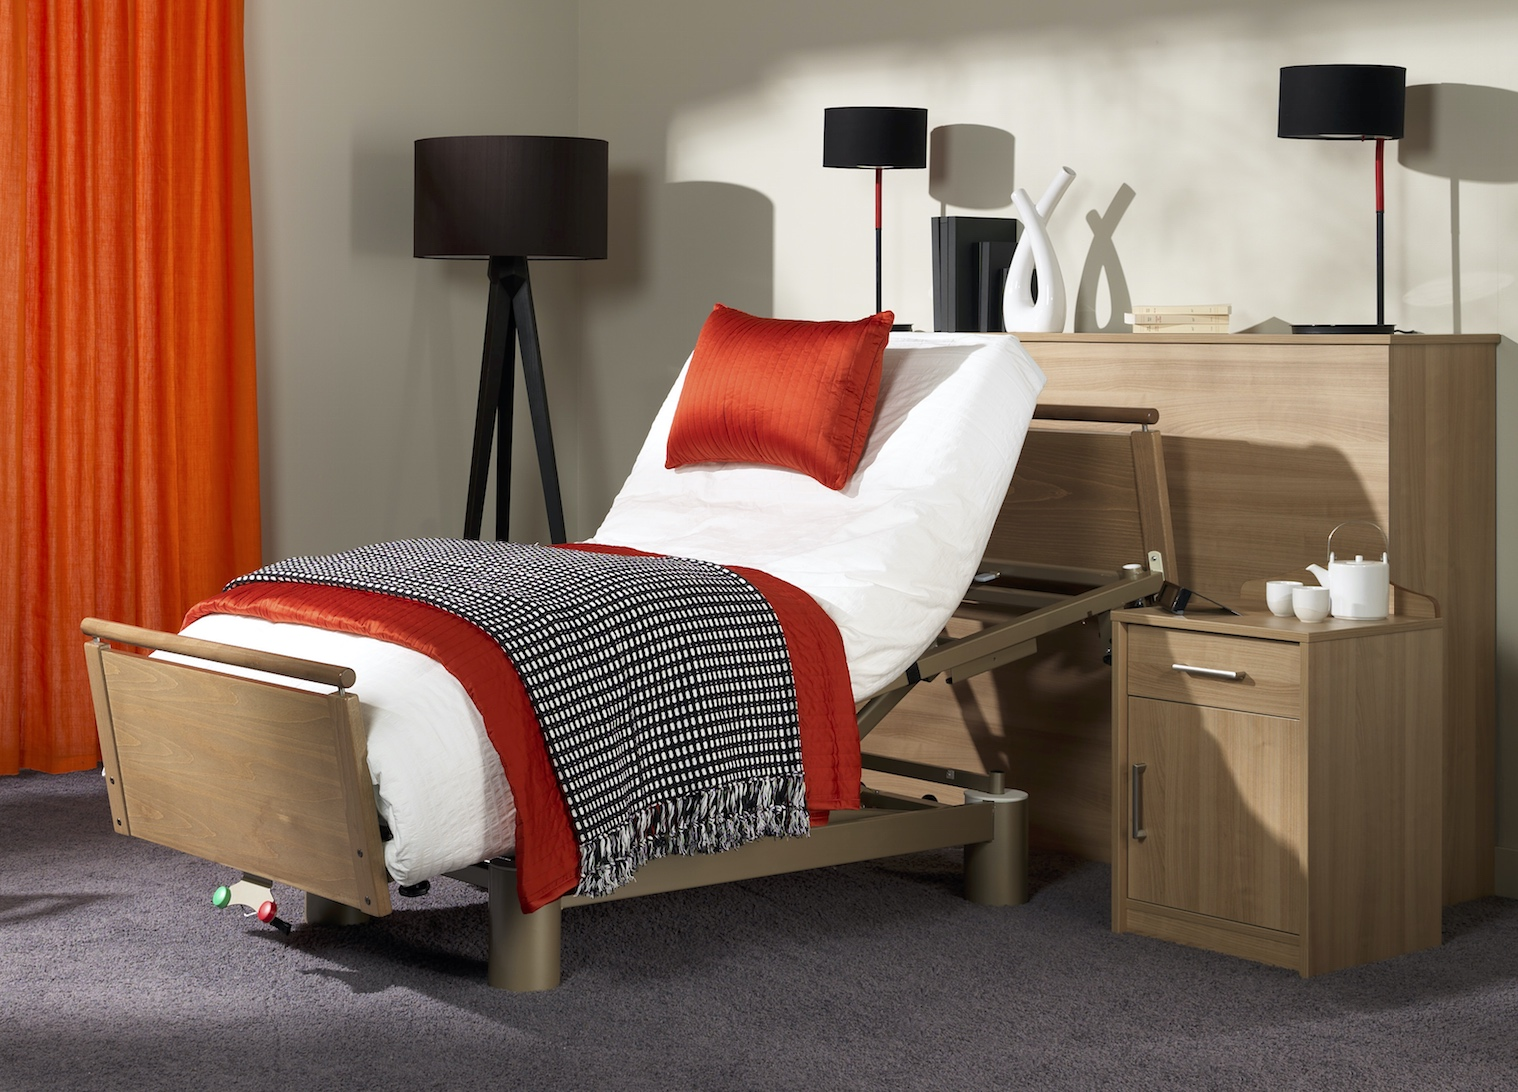 Altera 922 Height Adjustable Profiling Bed  Living made easy